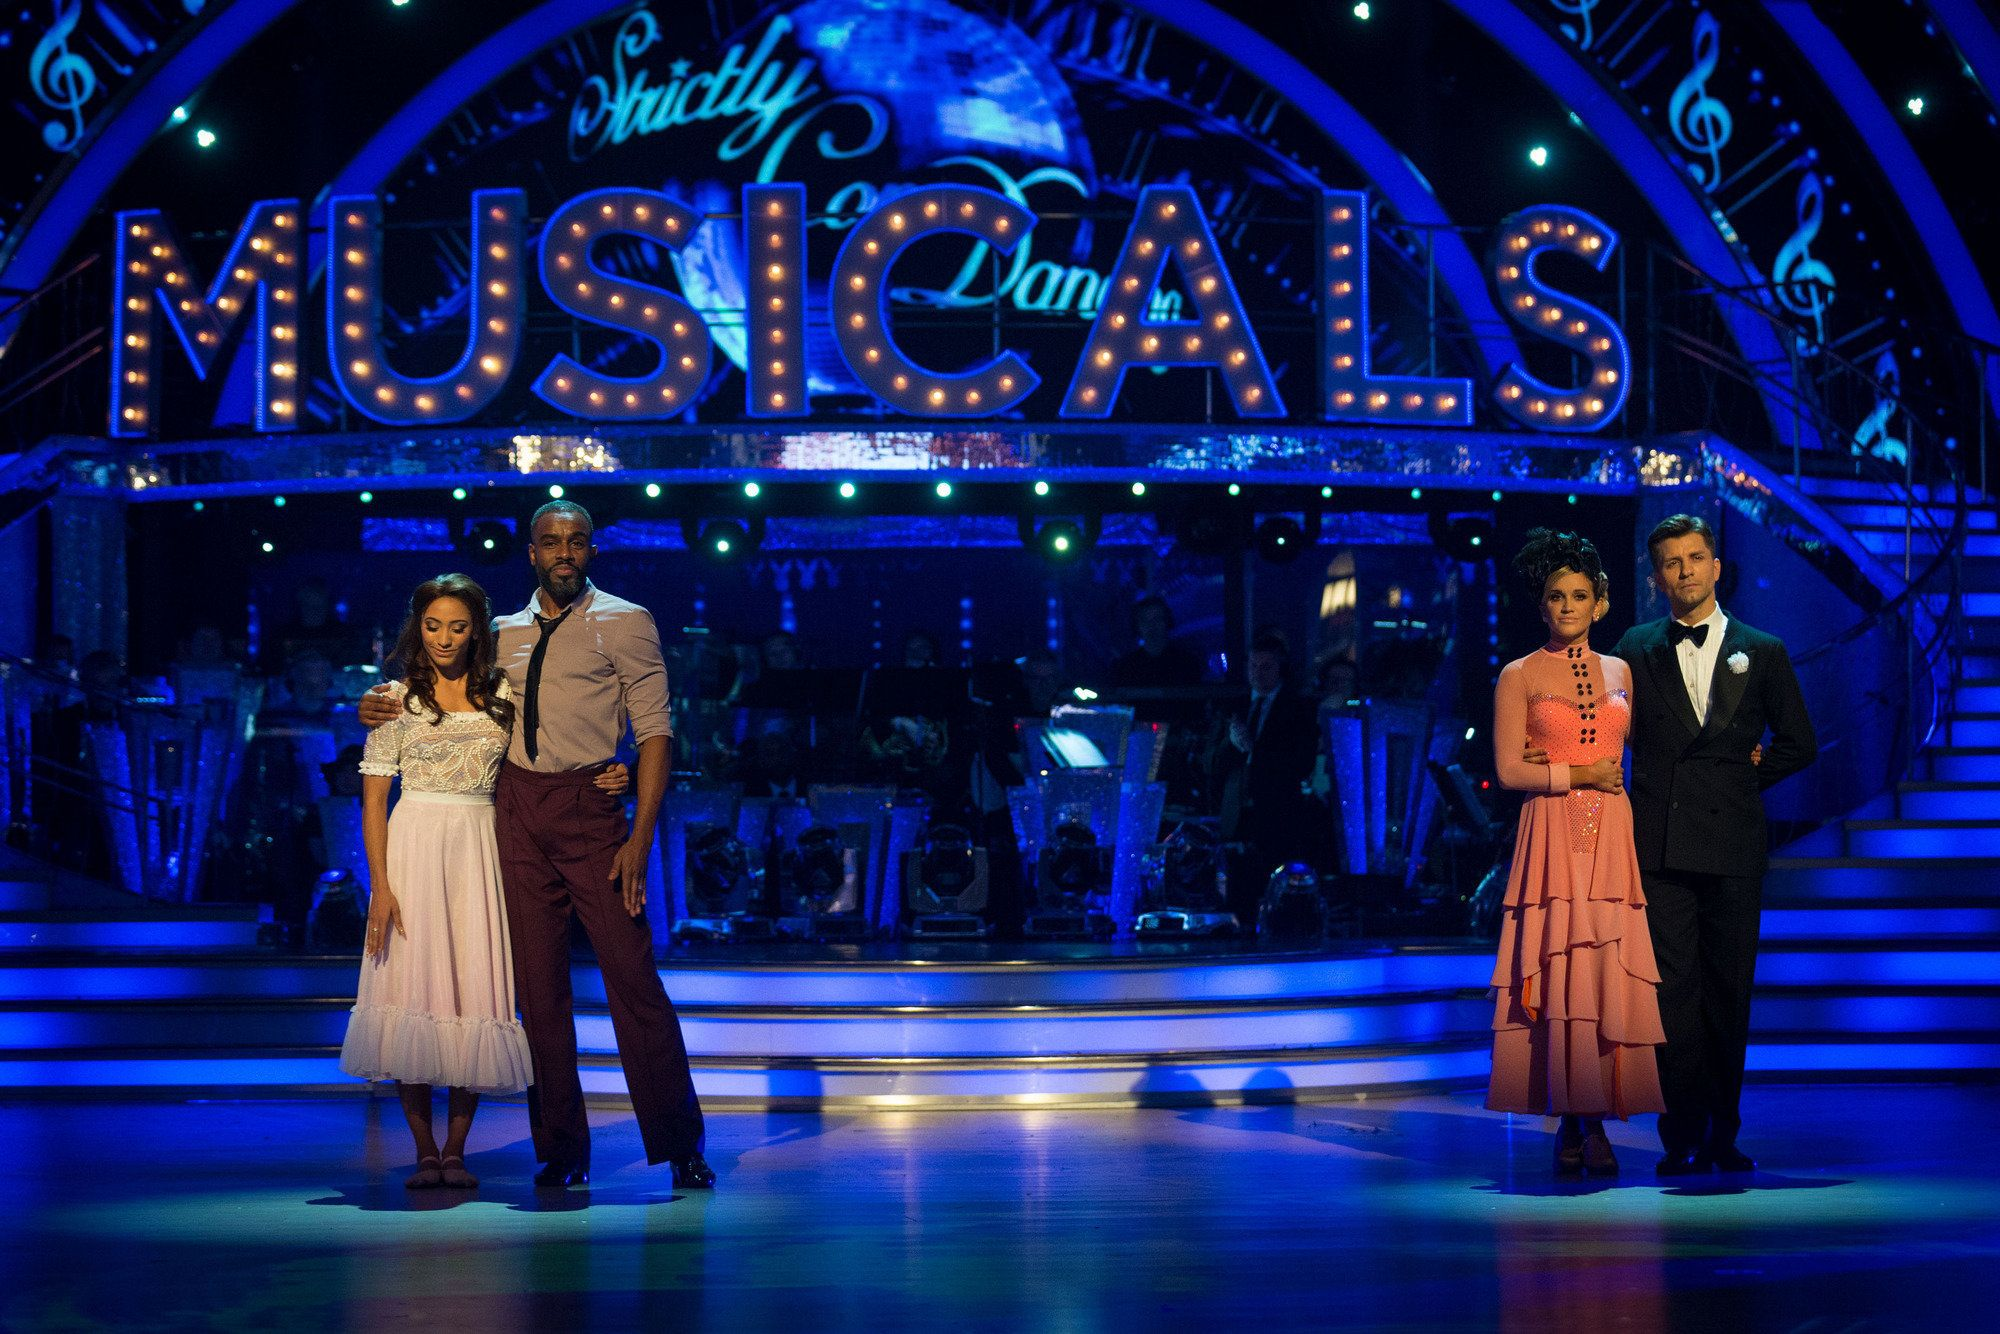 Here's who was eliminated from Strictly Come Dancing